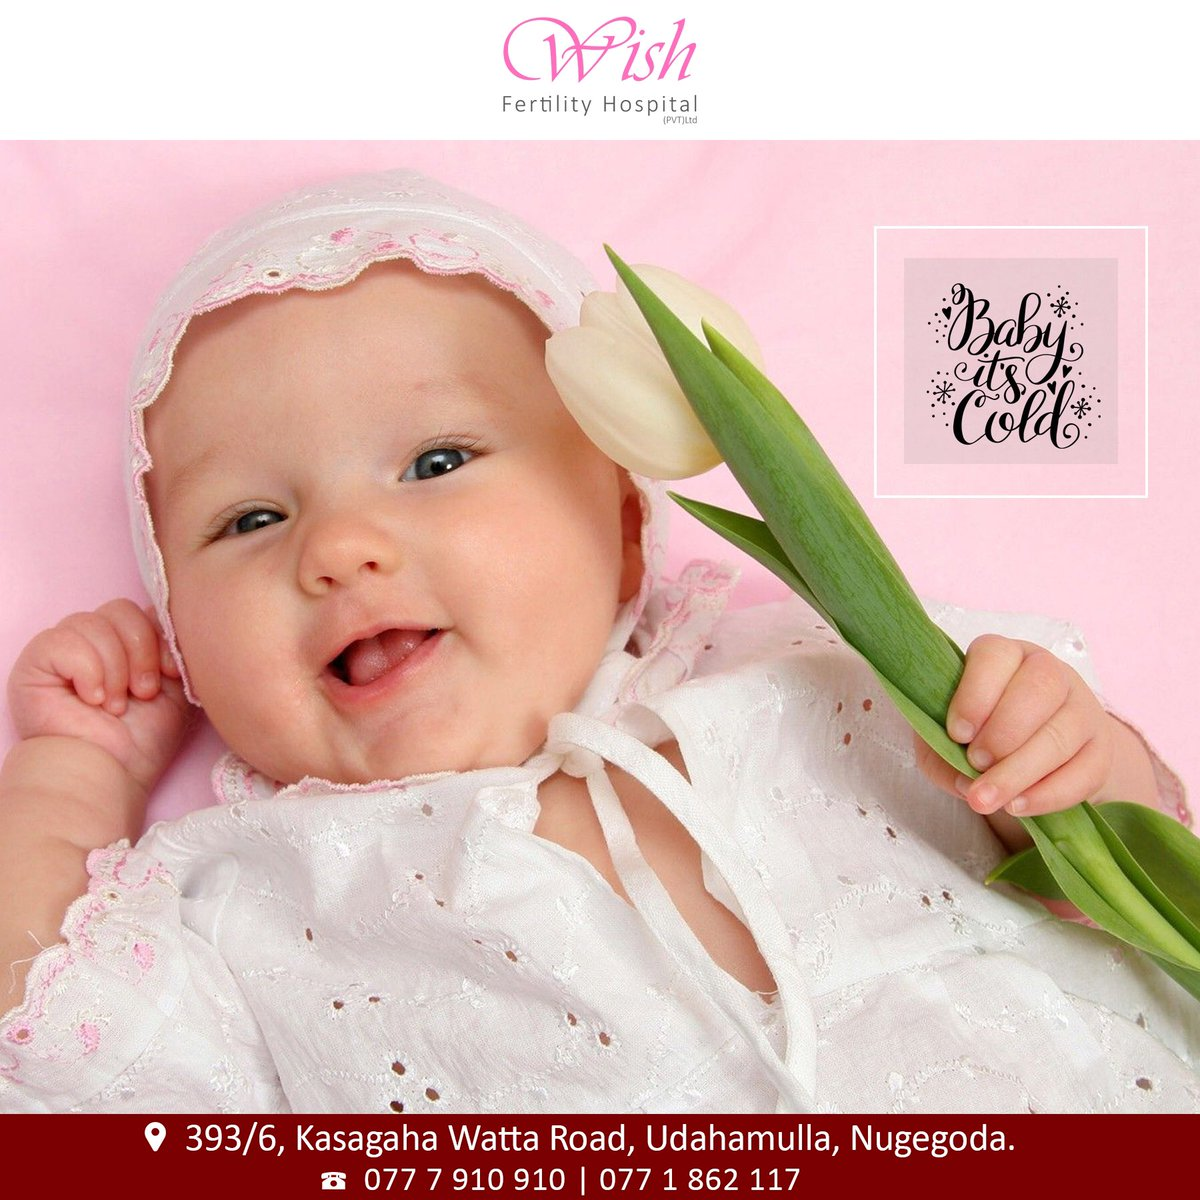 Good Morning ! ❤️  New Hope ❤️ New Life ❤️ Baby for you❤️ #wish #fertility #IVF #Hospital https://t.co/QrmE07h7m5